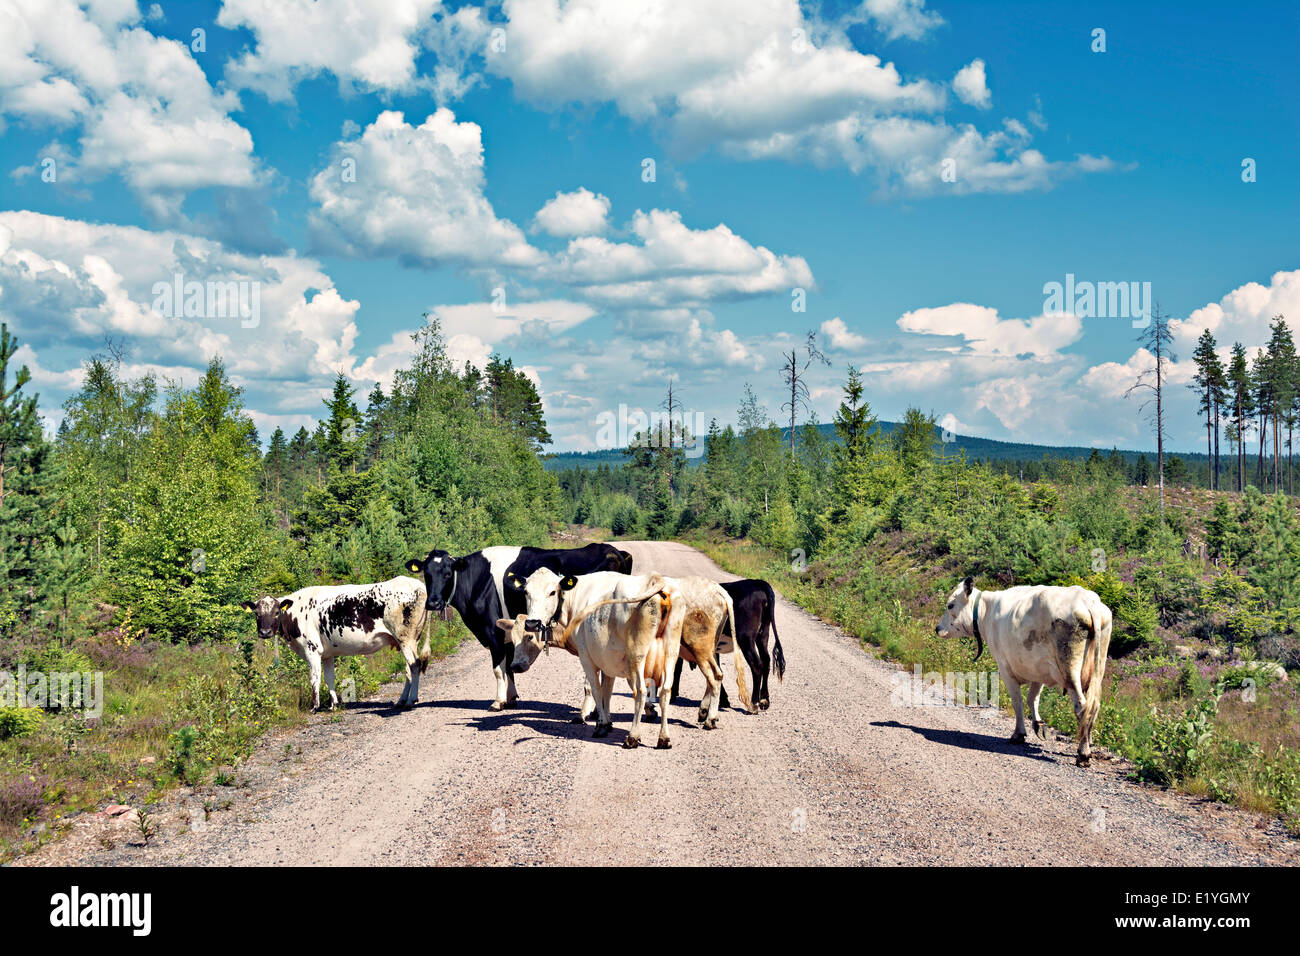 Swedish Mountain cattle on a road up in Dalarna. - Stock Image